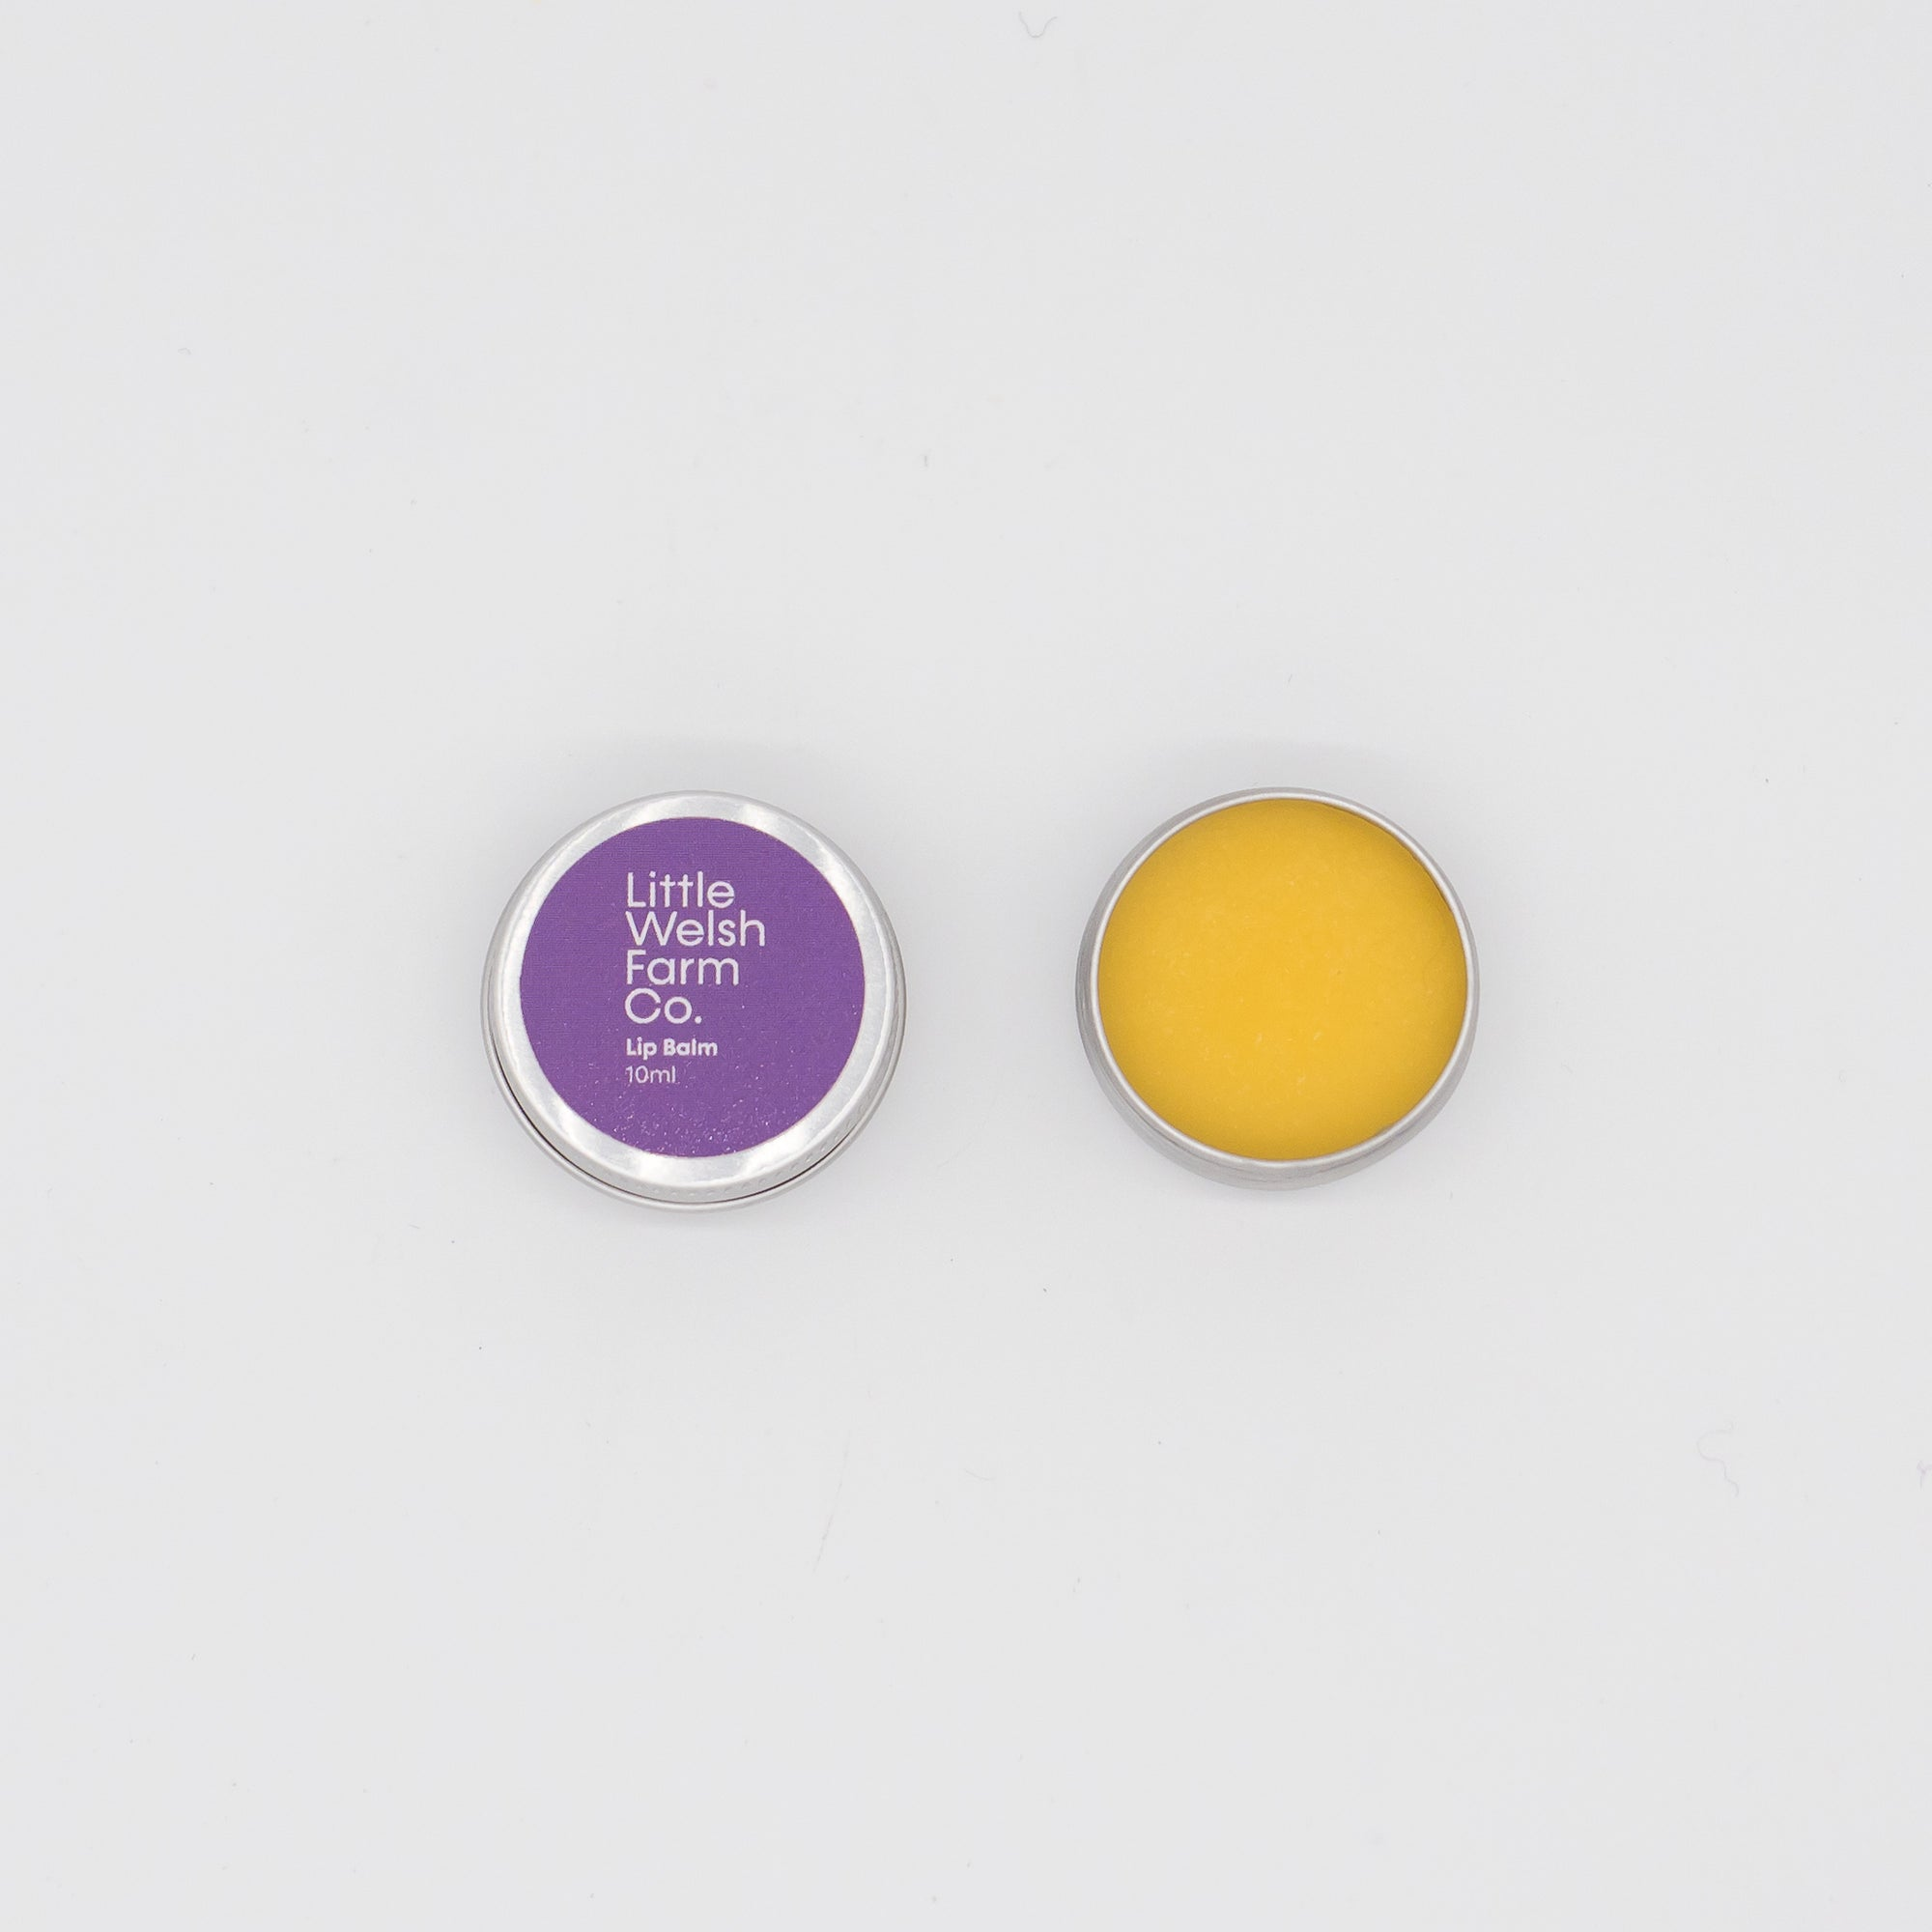 welsh organic lip balm made from sustainable ingredients